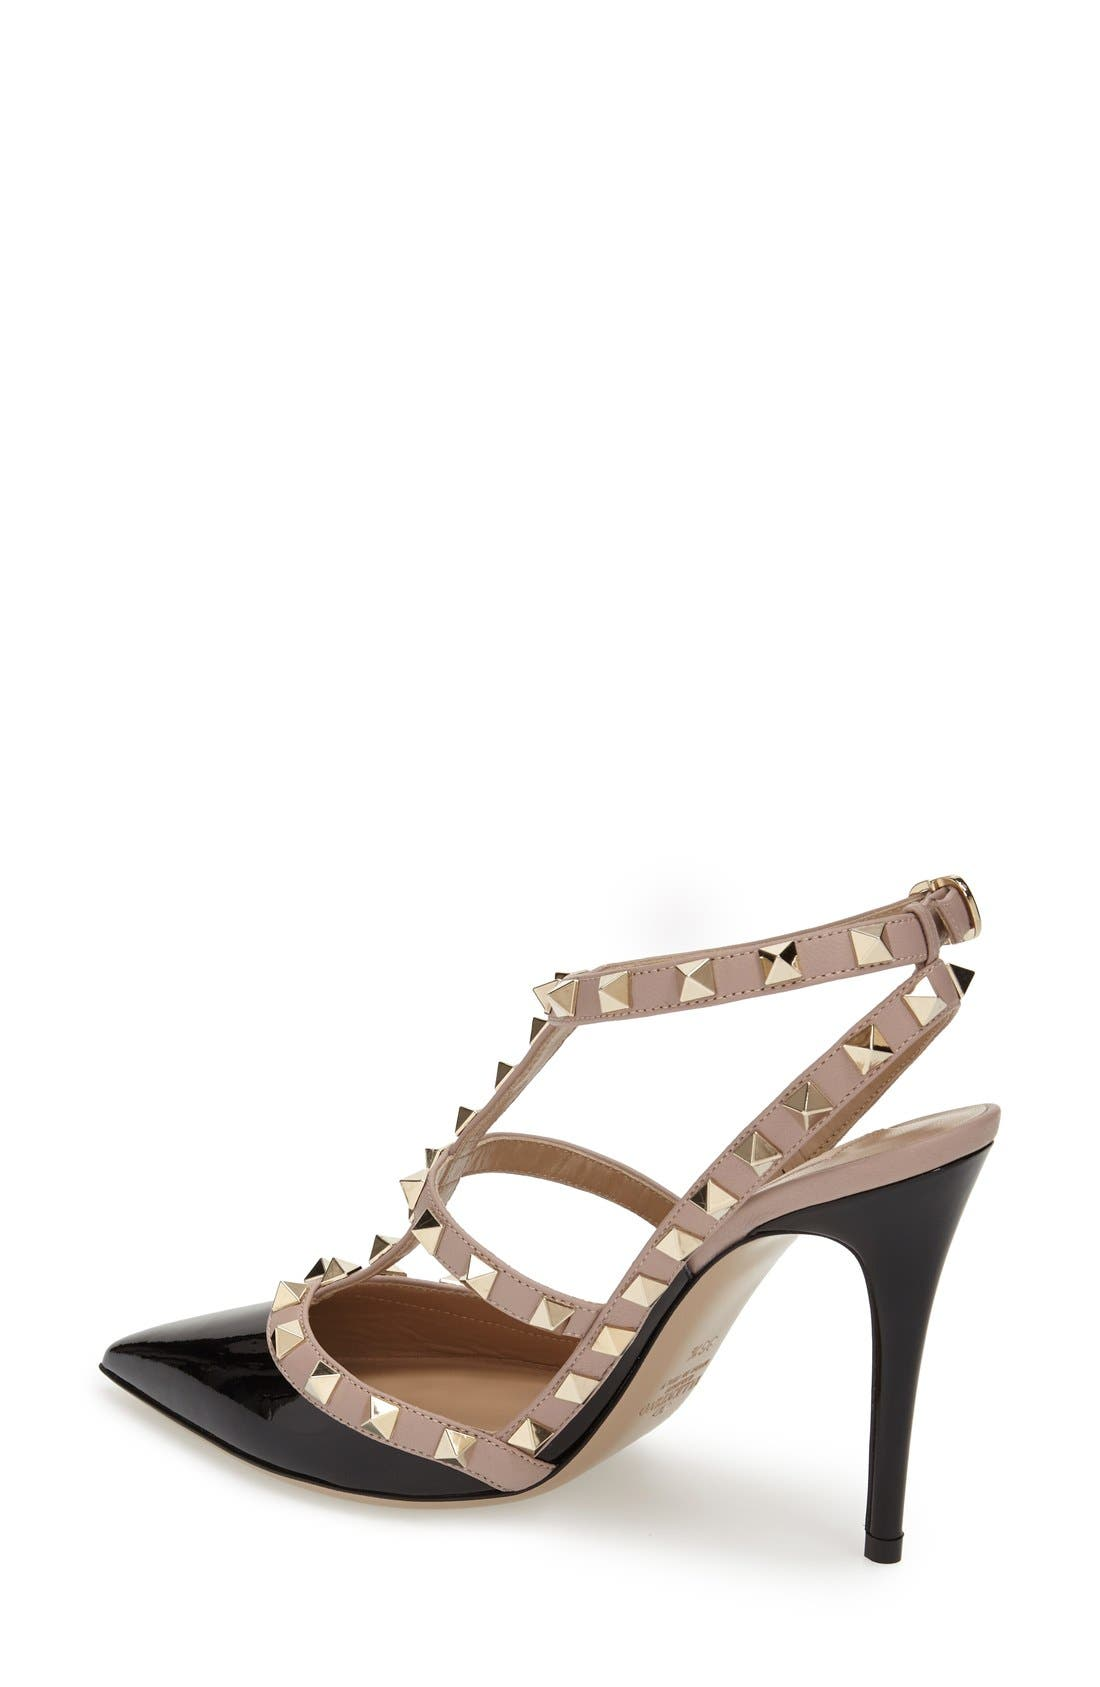 Valentino sandals shoes price - Valentino Sandals Shoes Price 30